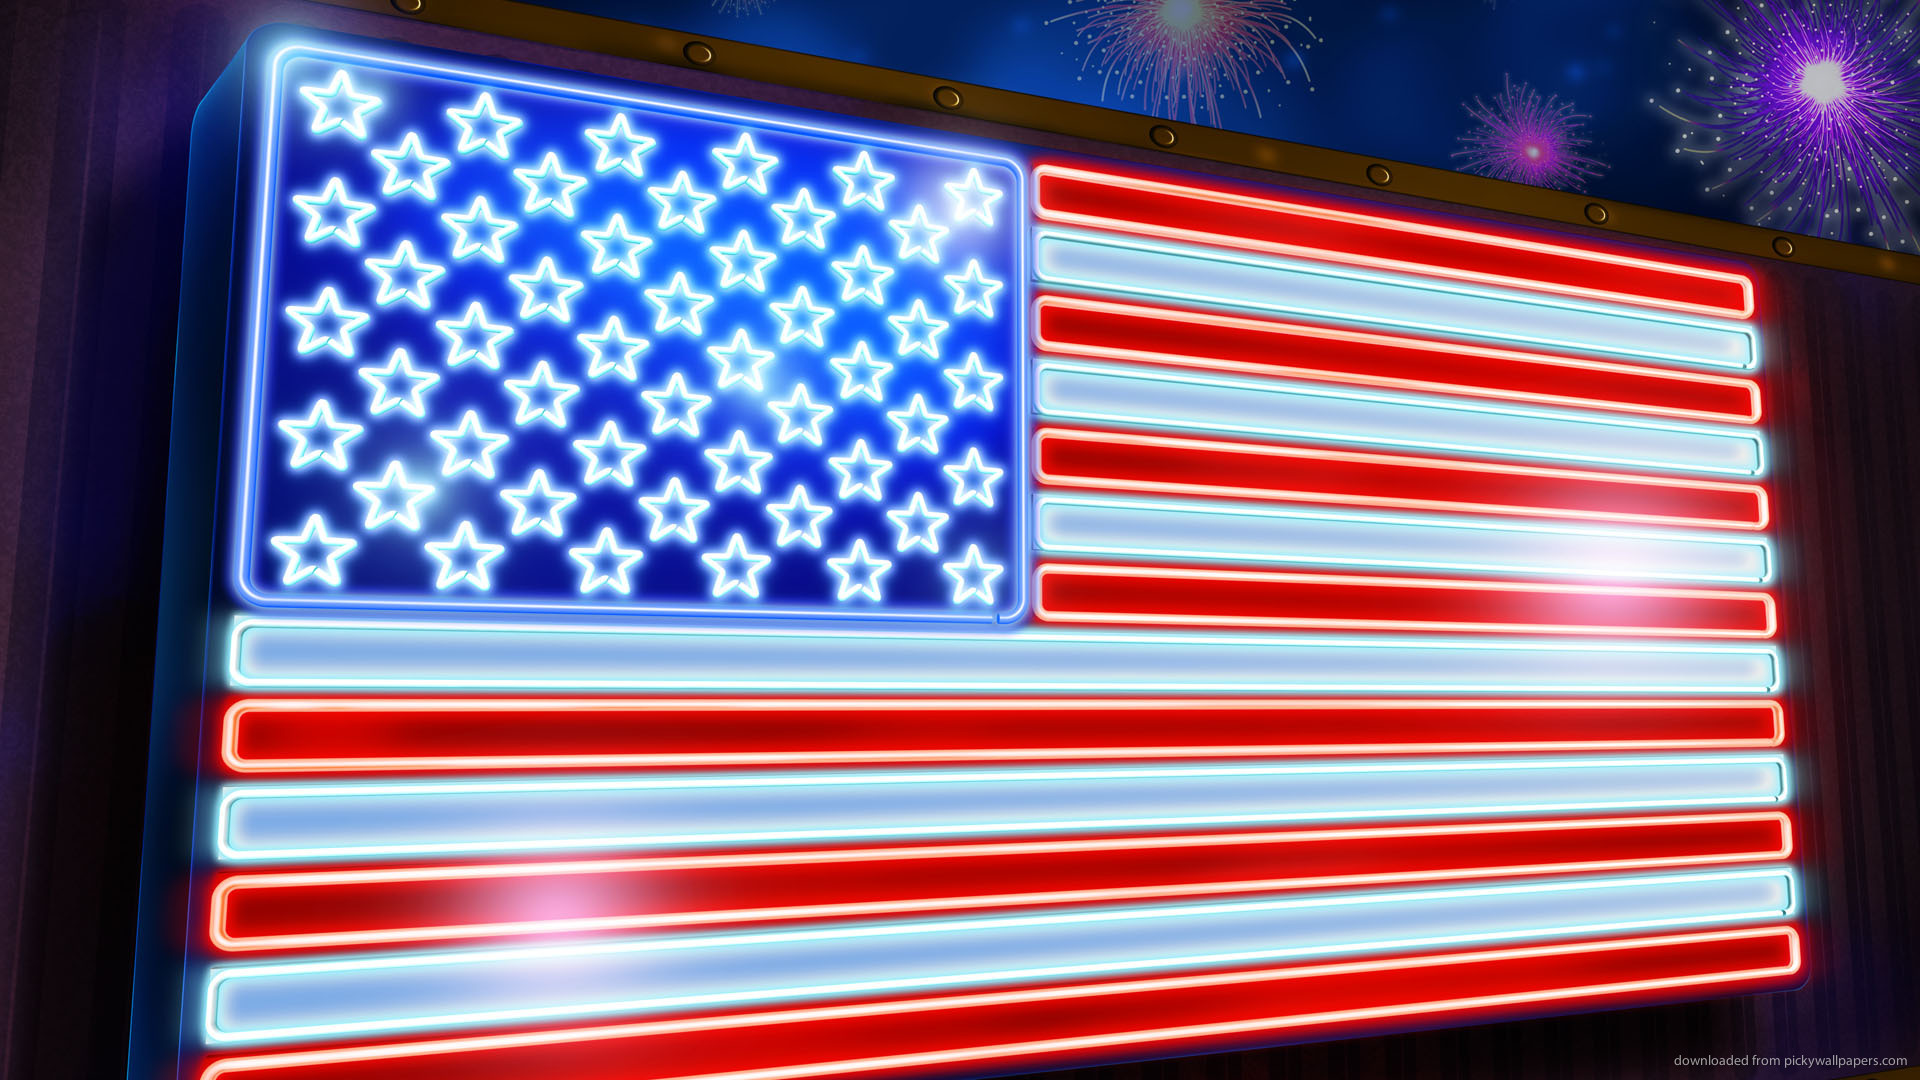 Download 1920x1080 Neon USA Flag Wallpaper 1920x1080